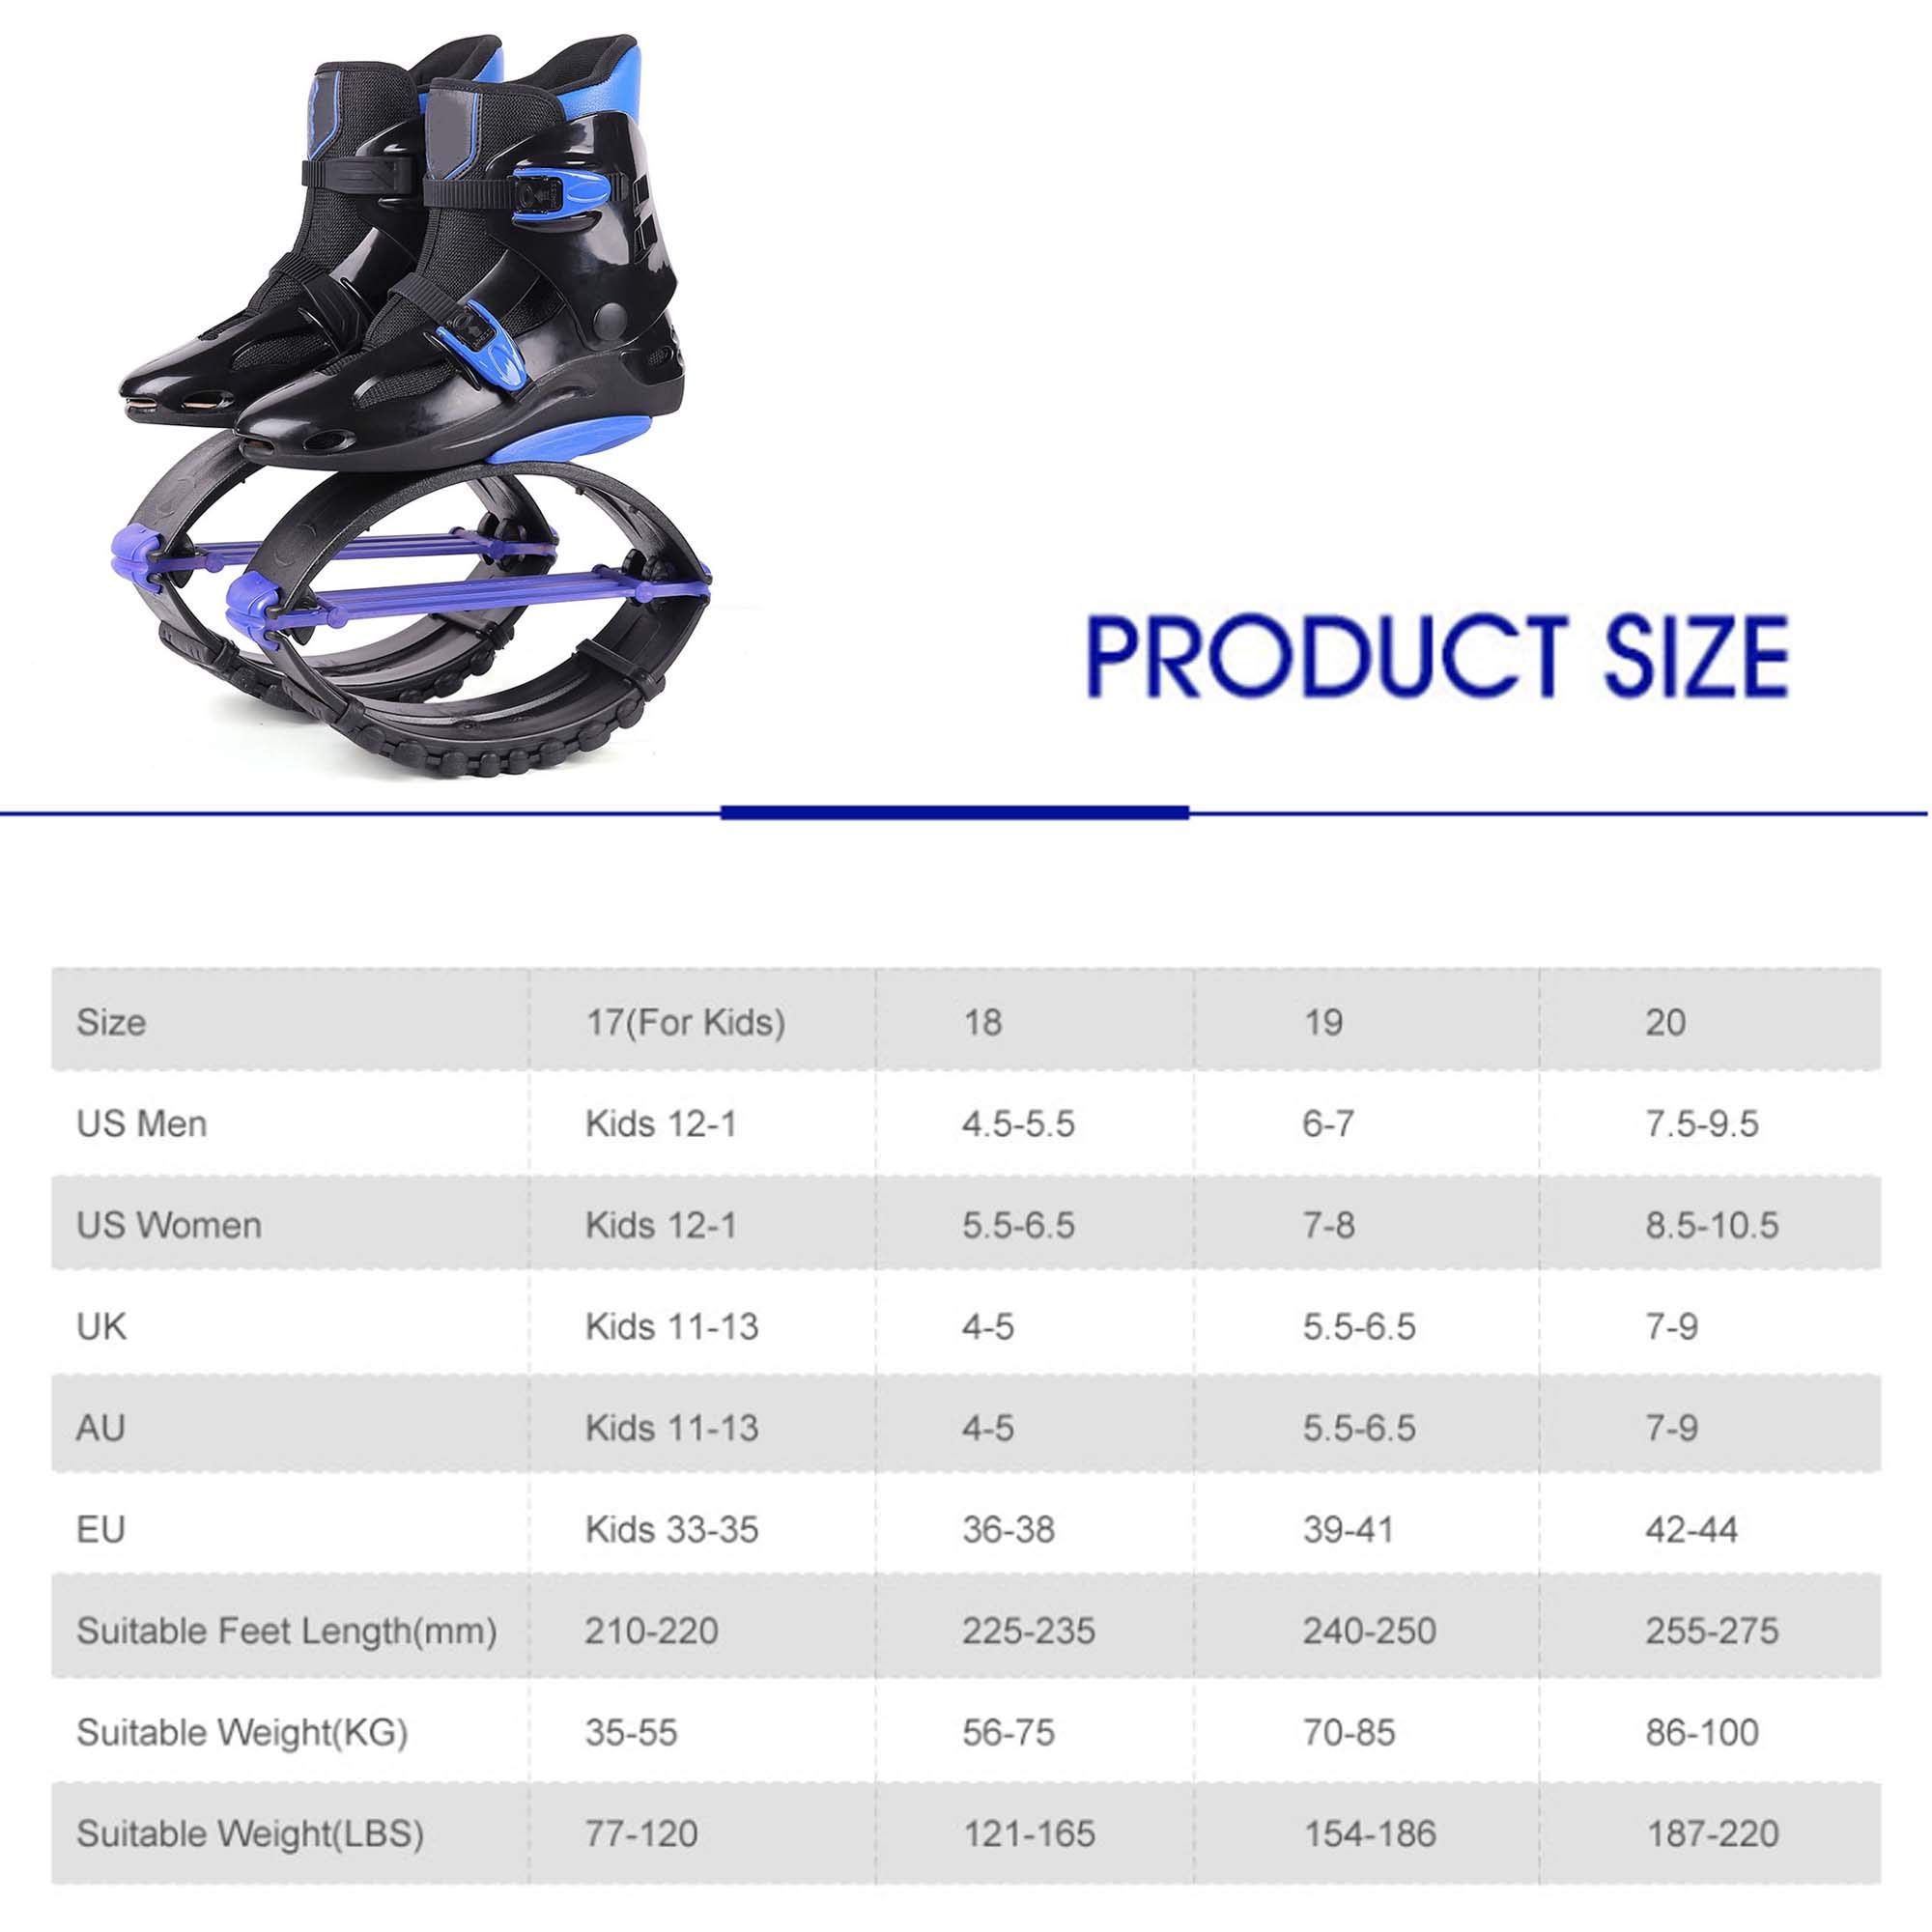 Jump Shoes Bounce Bounce Shoes Fitness Bouncer Suitable for Adult Youth Outdoor Sports,42to44 by H&M Bouncing shoes (Image #7)